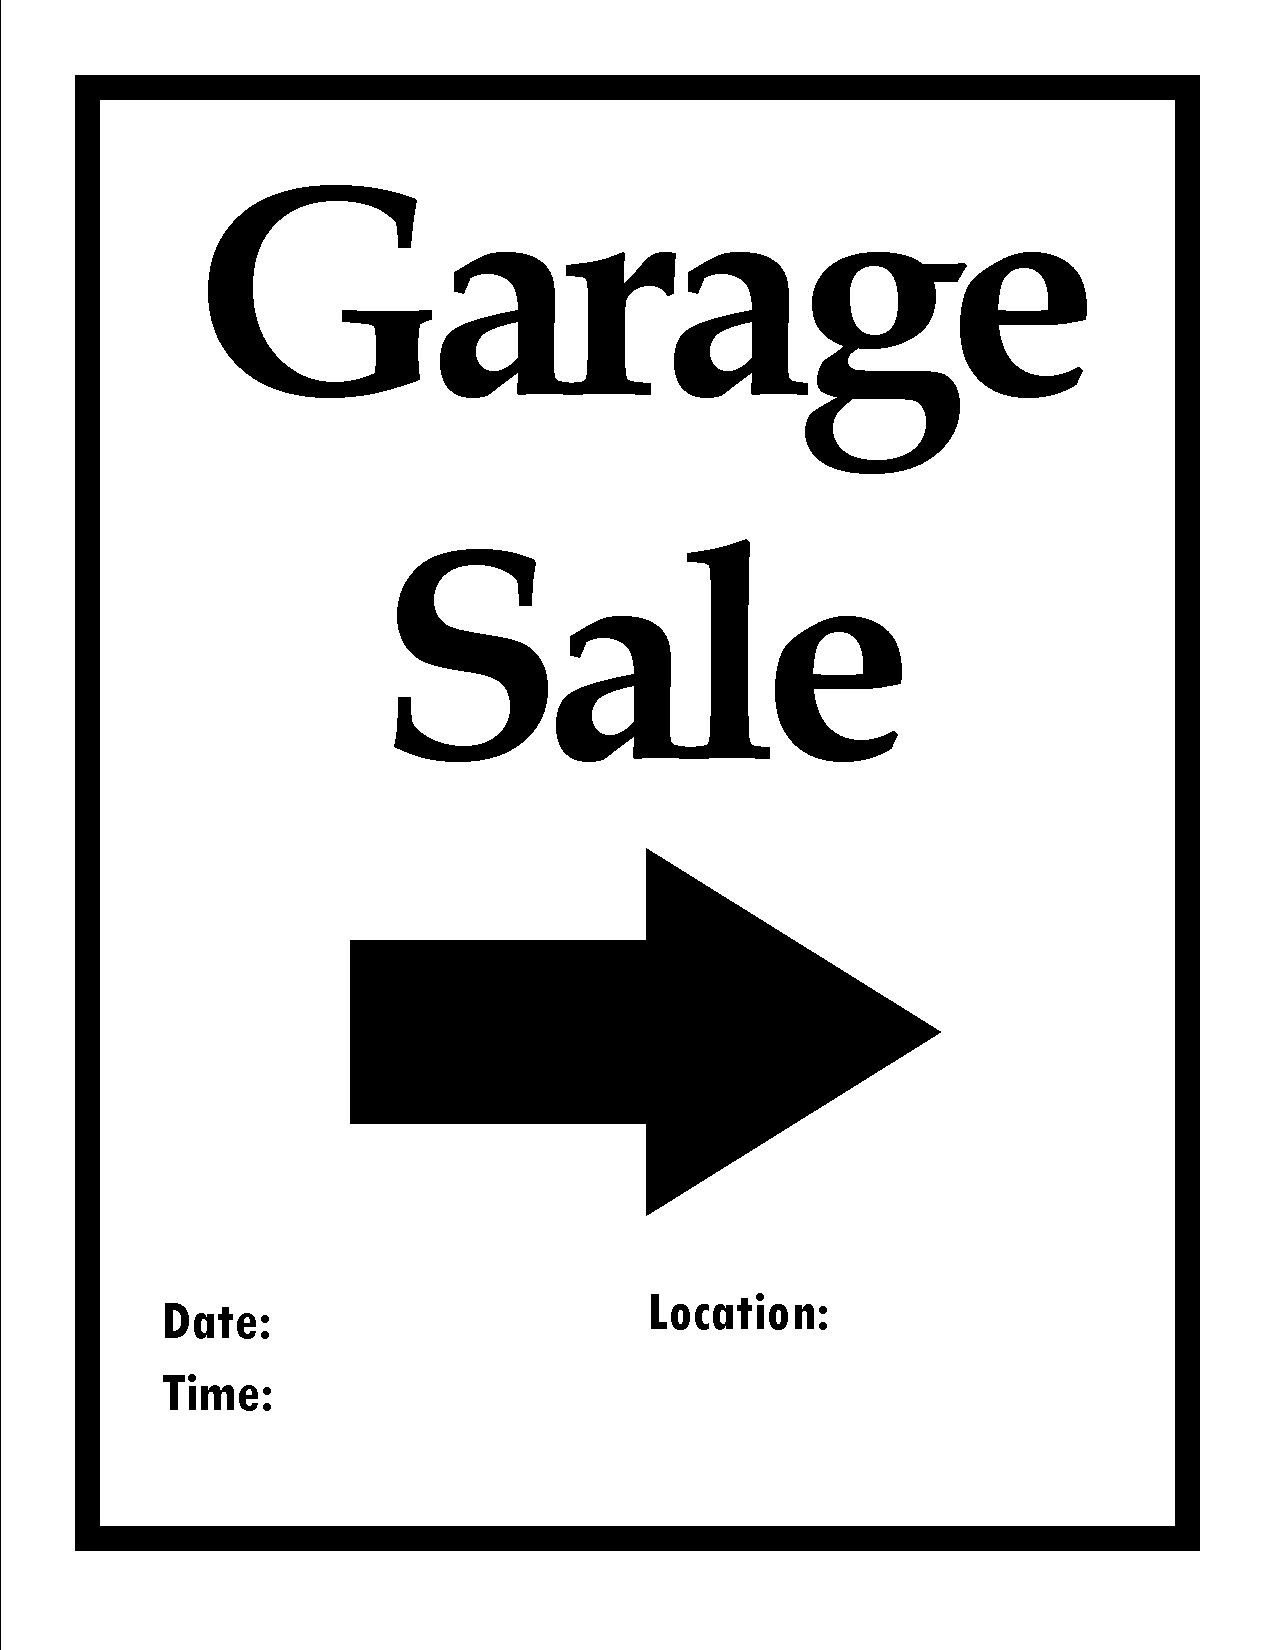 Garage Sale Sign Template Printable Items to organize Your Next Move